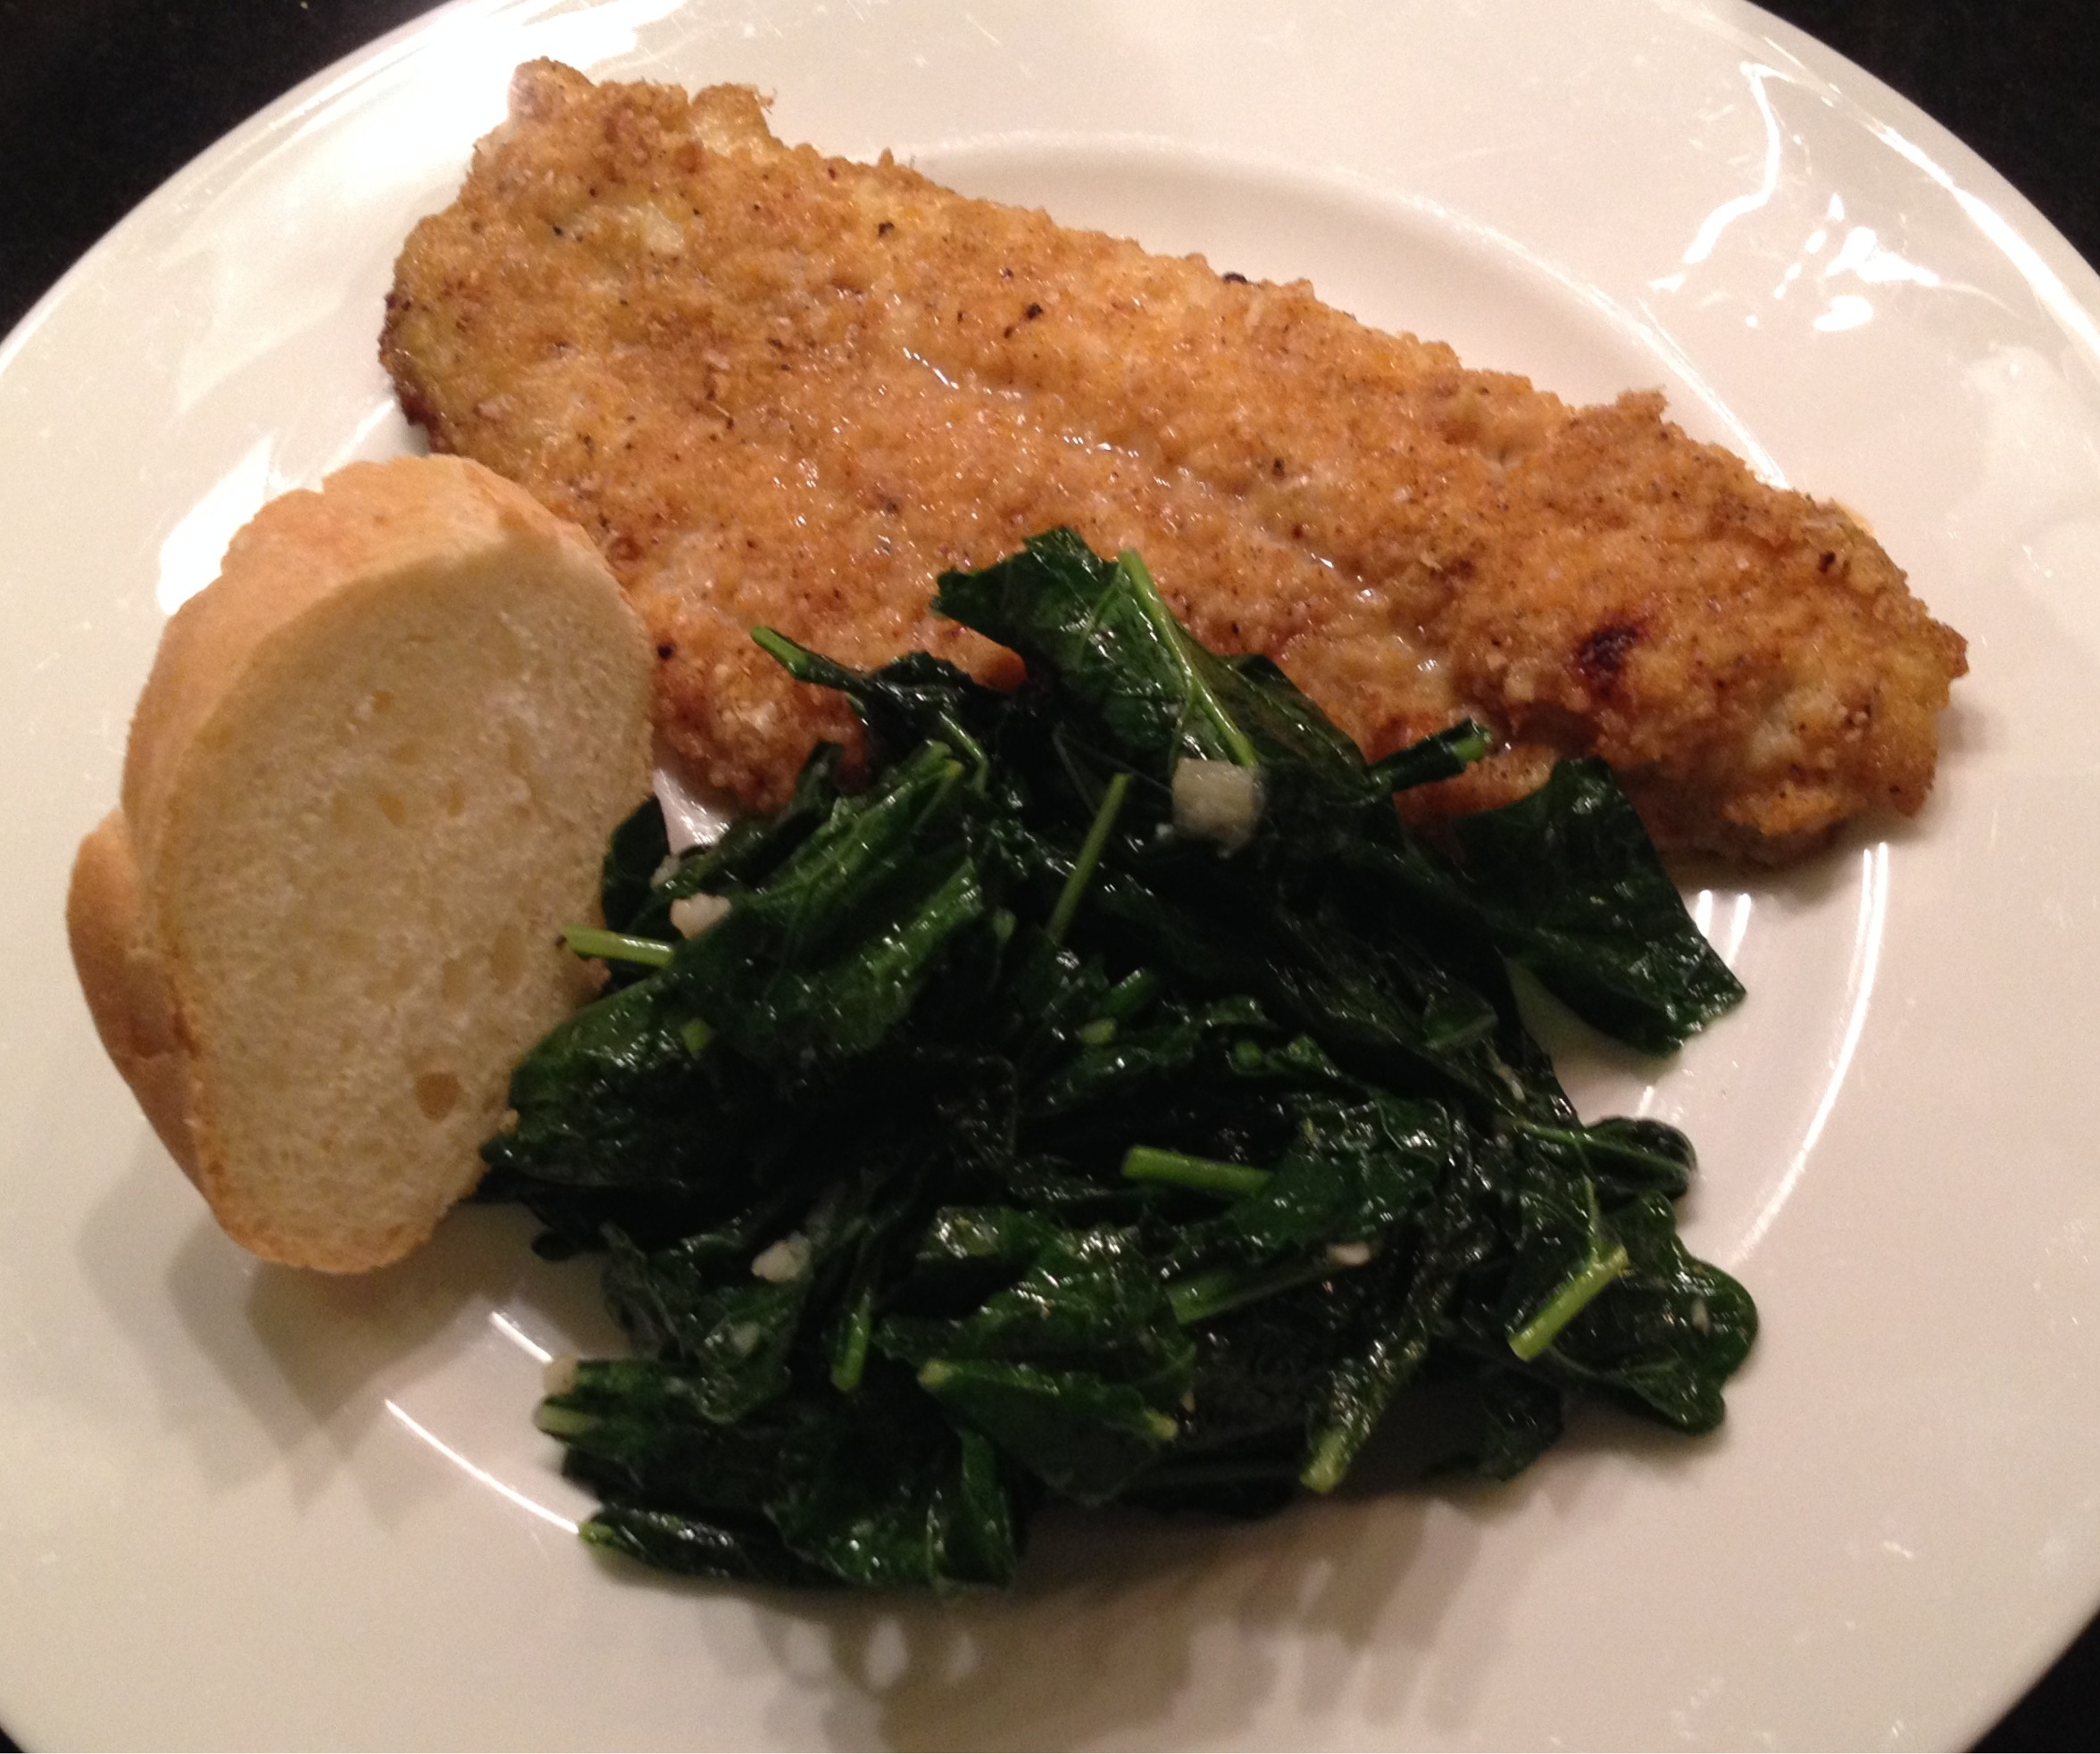 Simply7 quinoa chip crusted catfish on a plate with sauteed kale and baguette piece.